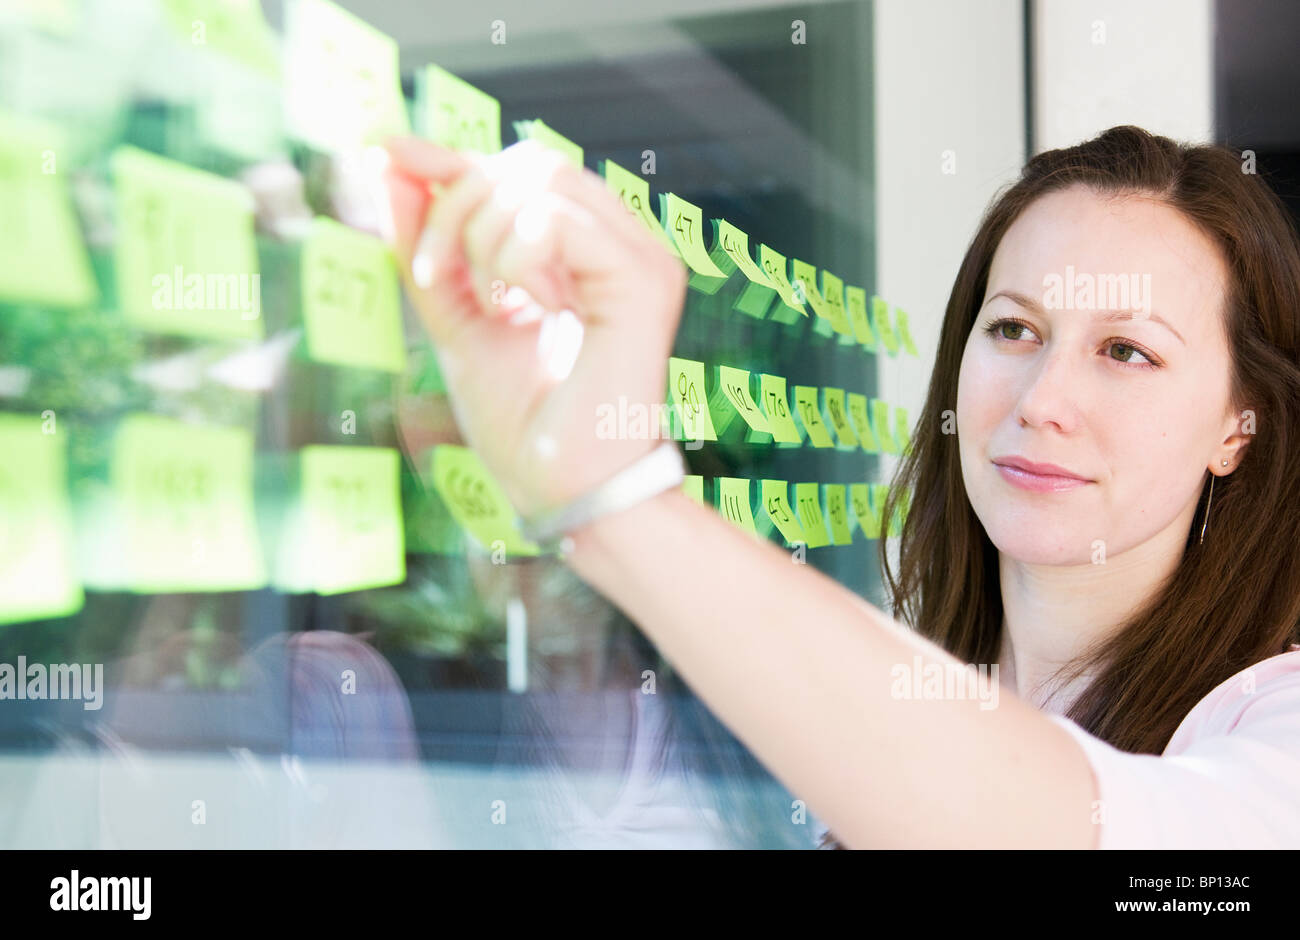 Women works with yellow labels - Stock Image